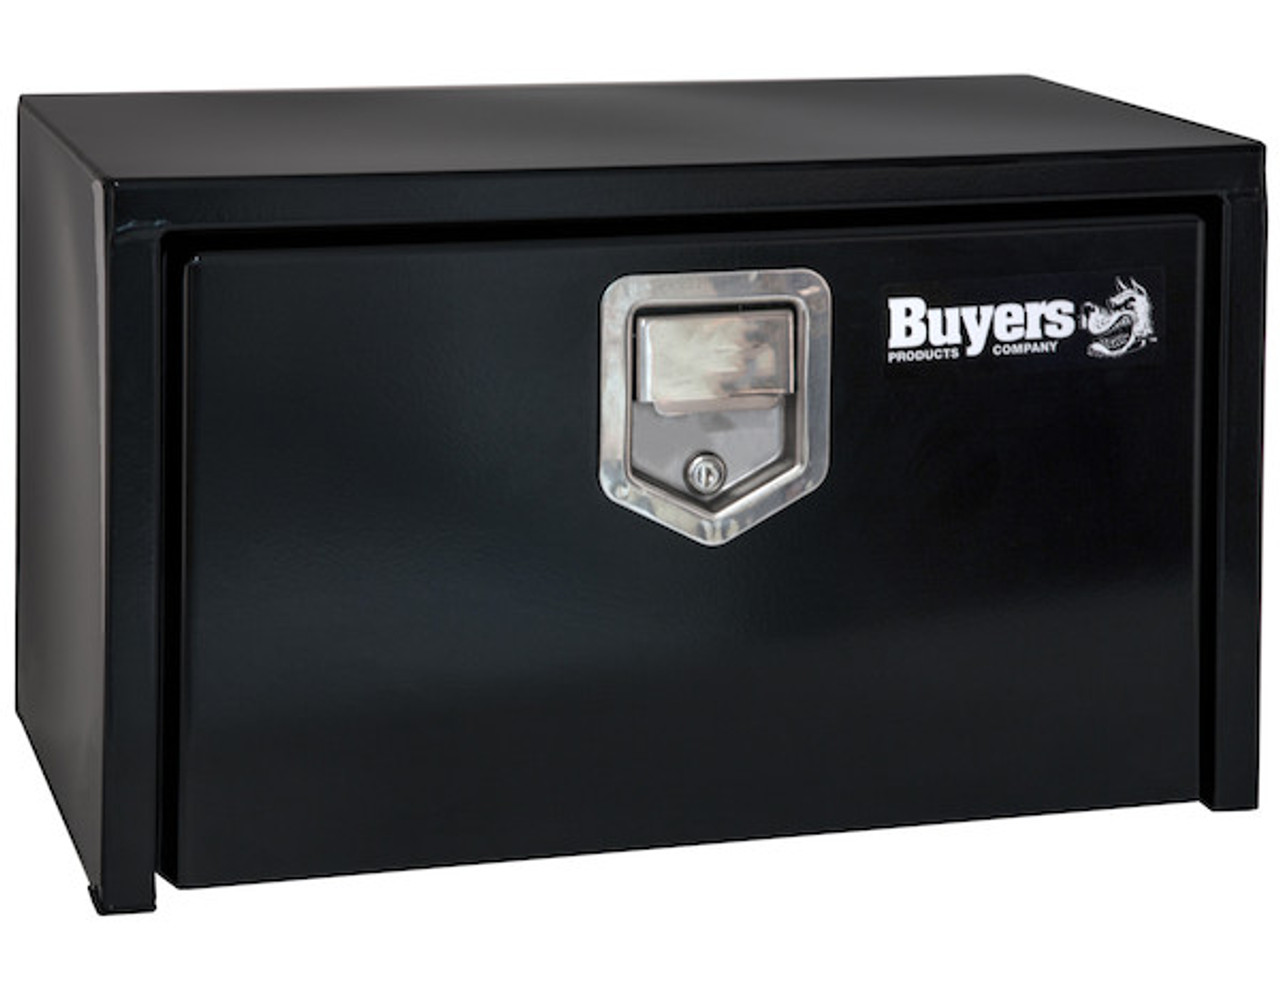 1703103 BUYERS PRODUCTS BLACK STEEL UNDERBODY TRUCK BOX WITH PADDLE LATCH TOOLBOX